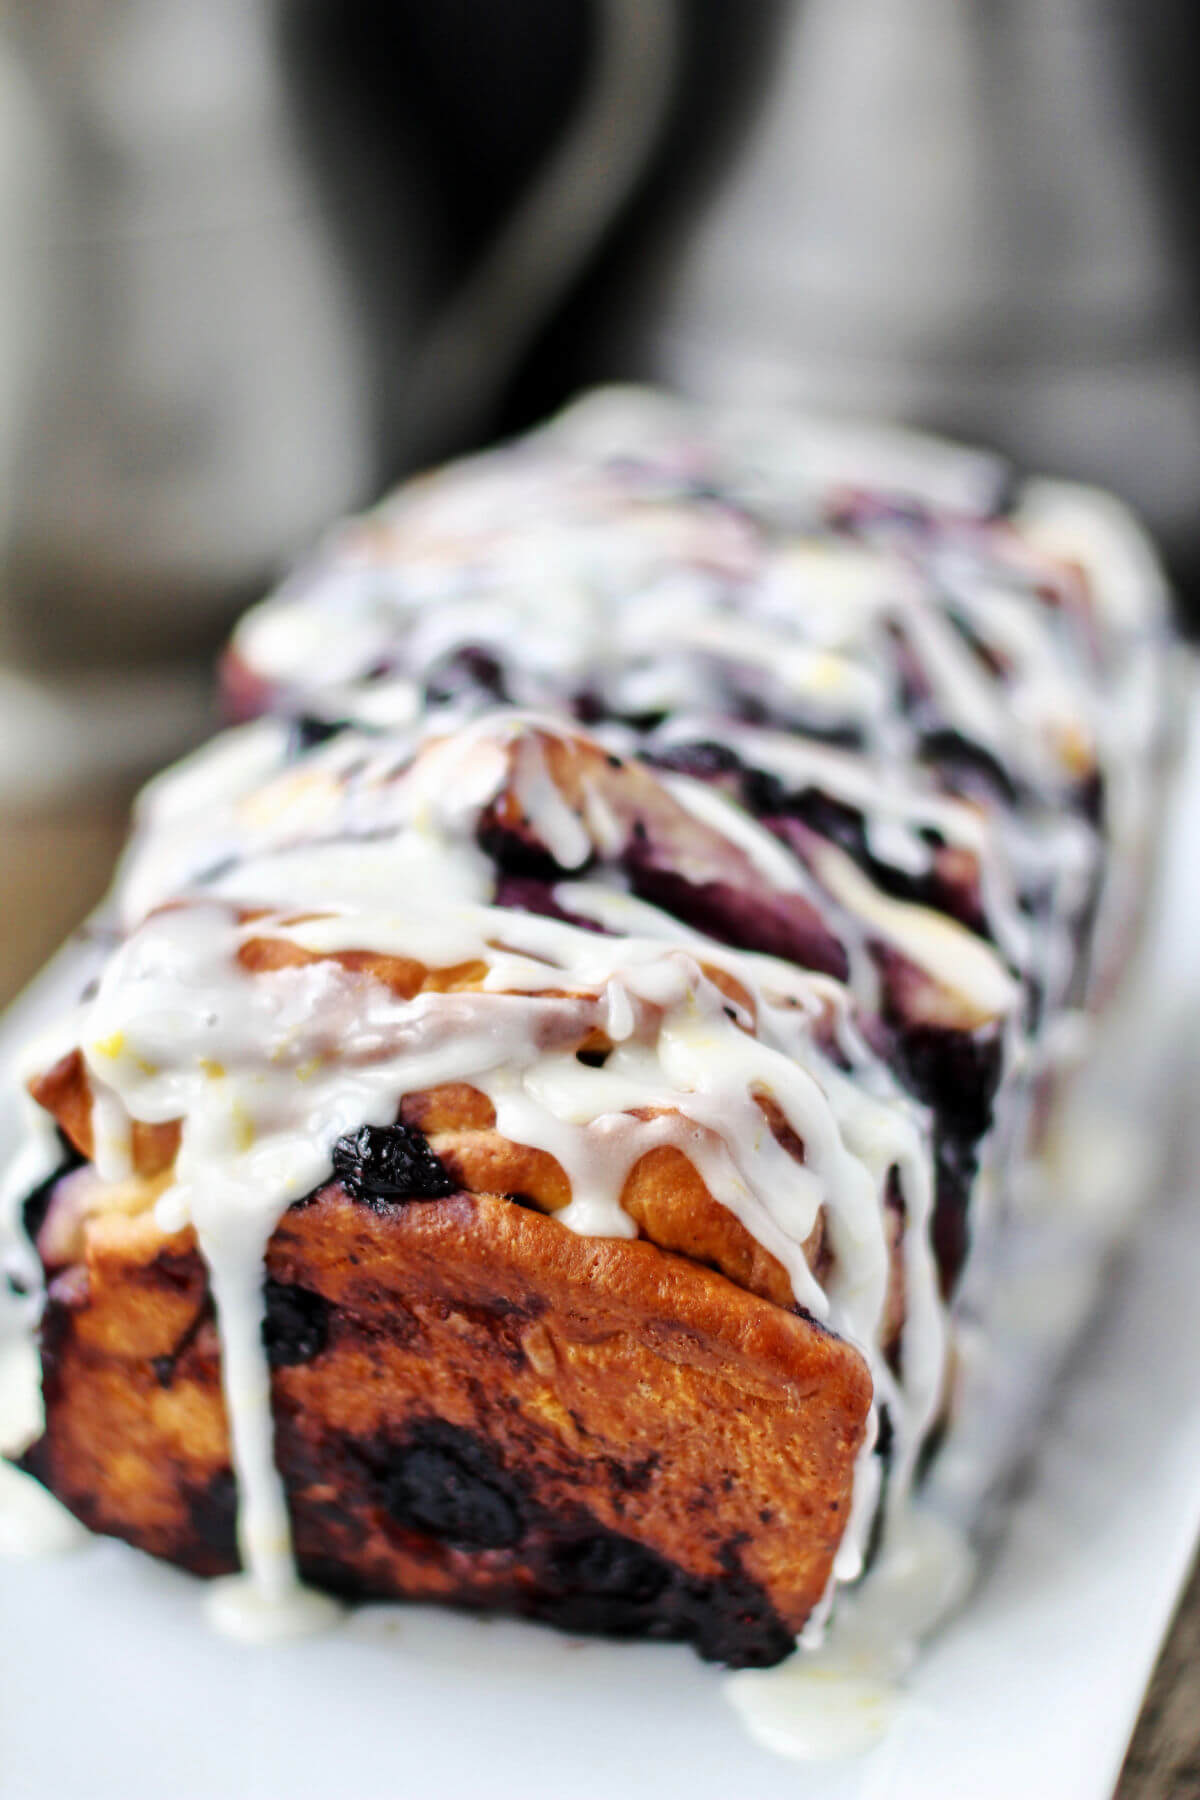 Roasted Blueberry Pull-Apart Loaf.